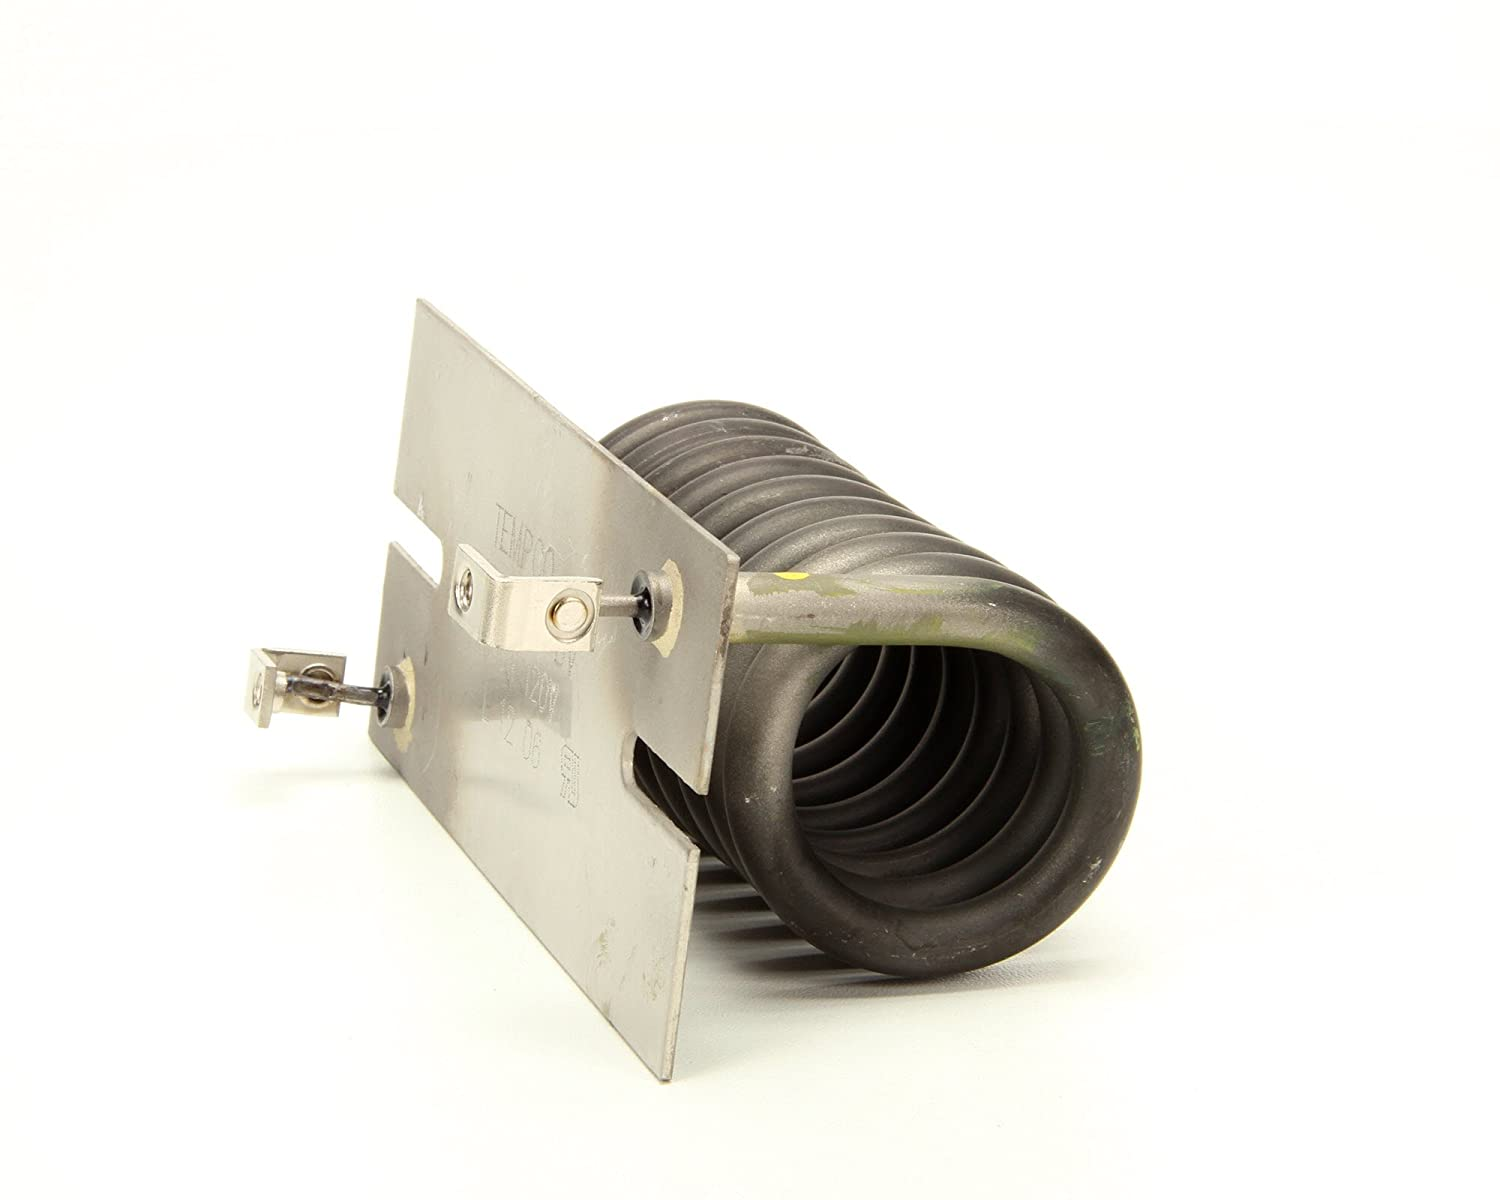 Image of Bevles 782004 1600W 120V Coil Element Commercial Cooking Equipment